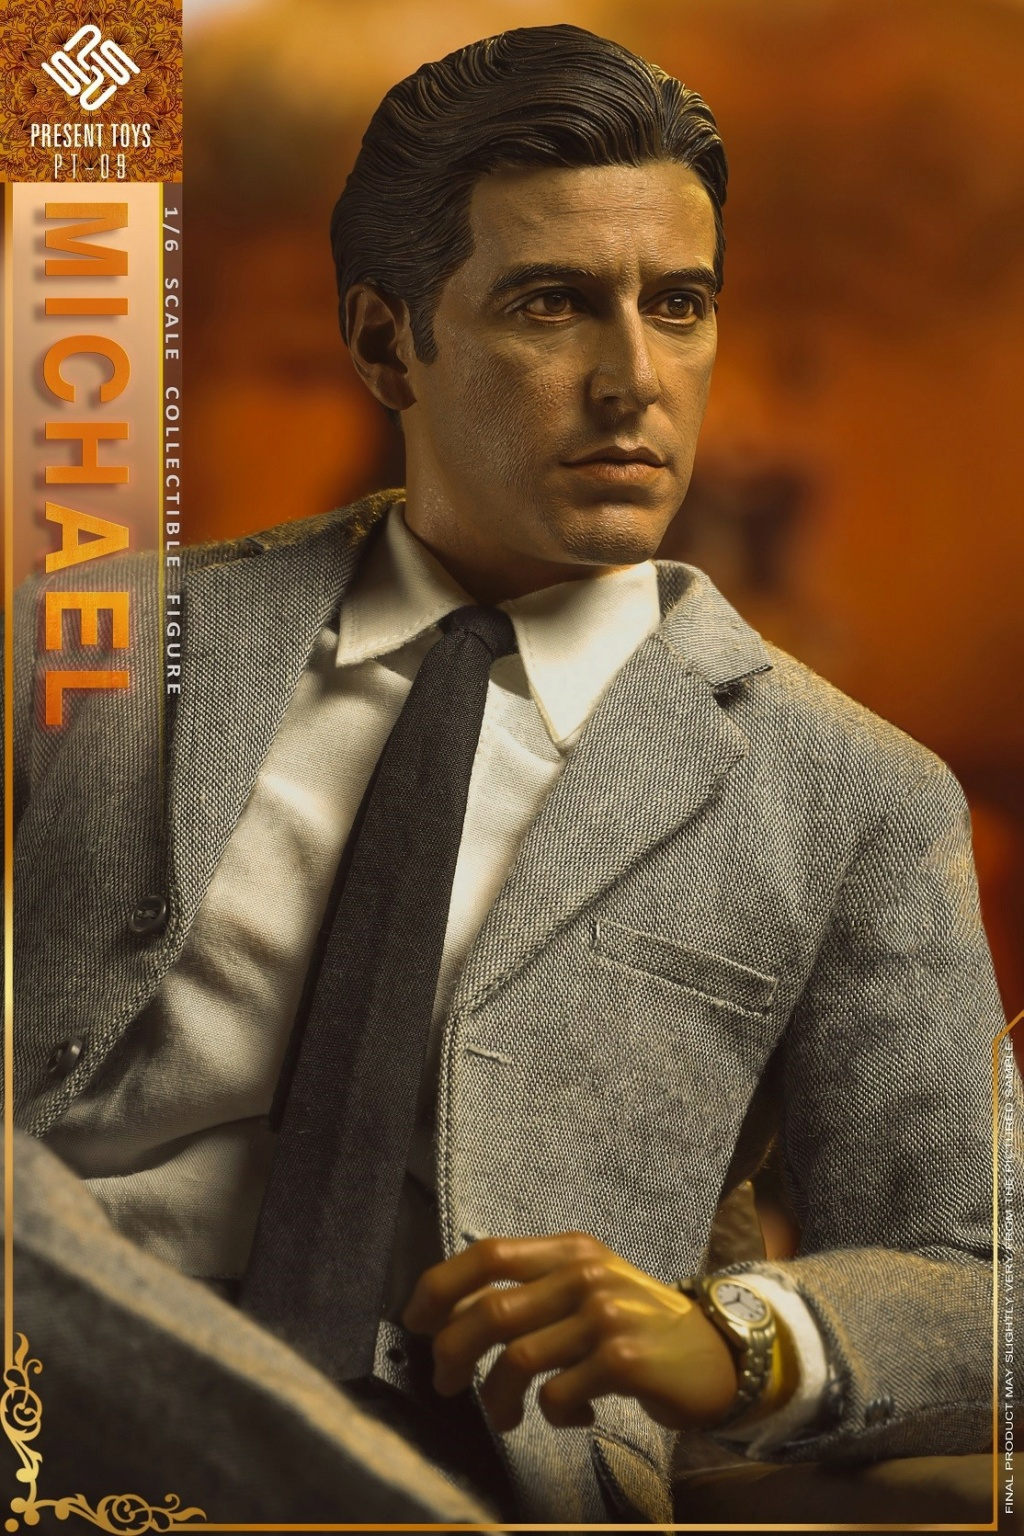 """Michael - NEW PRODUCT: Present Toys: 1/6 """"Second Generation Black Boss"""" Michael Collectible Figure #PT-sp09 16342110"""